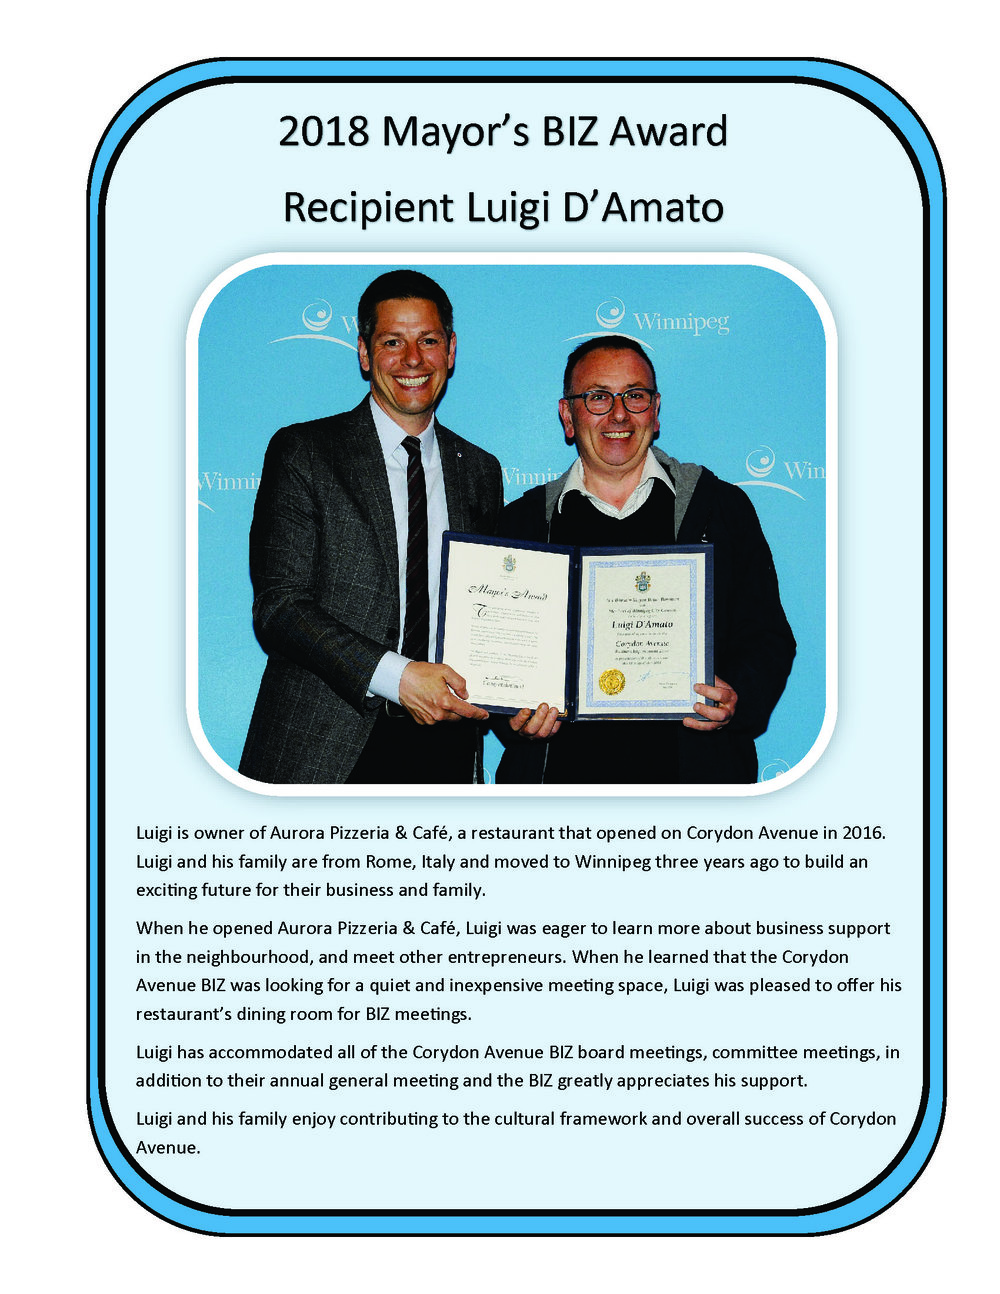 Luigi damato mayor awards 2018.jpg